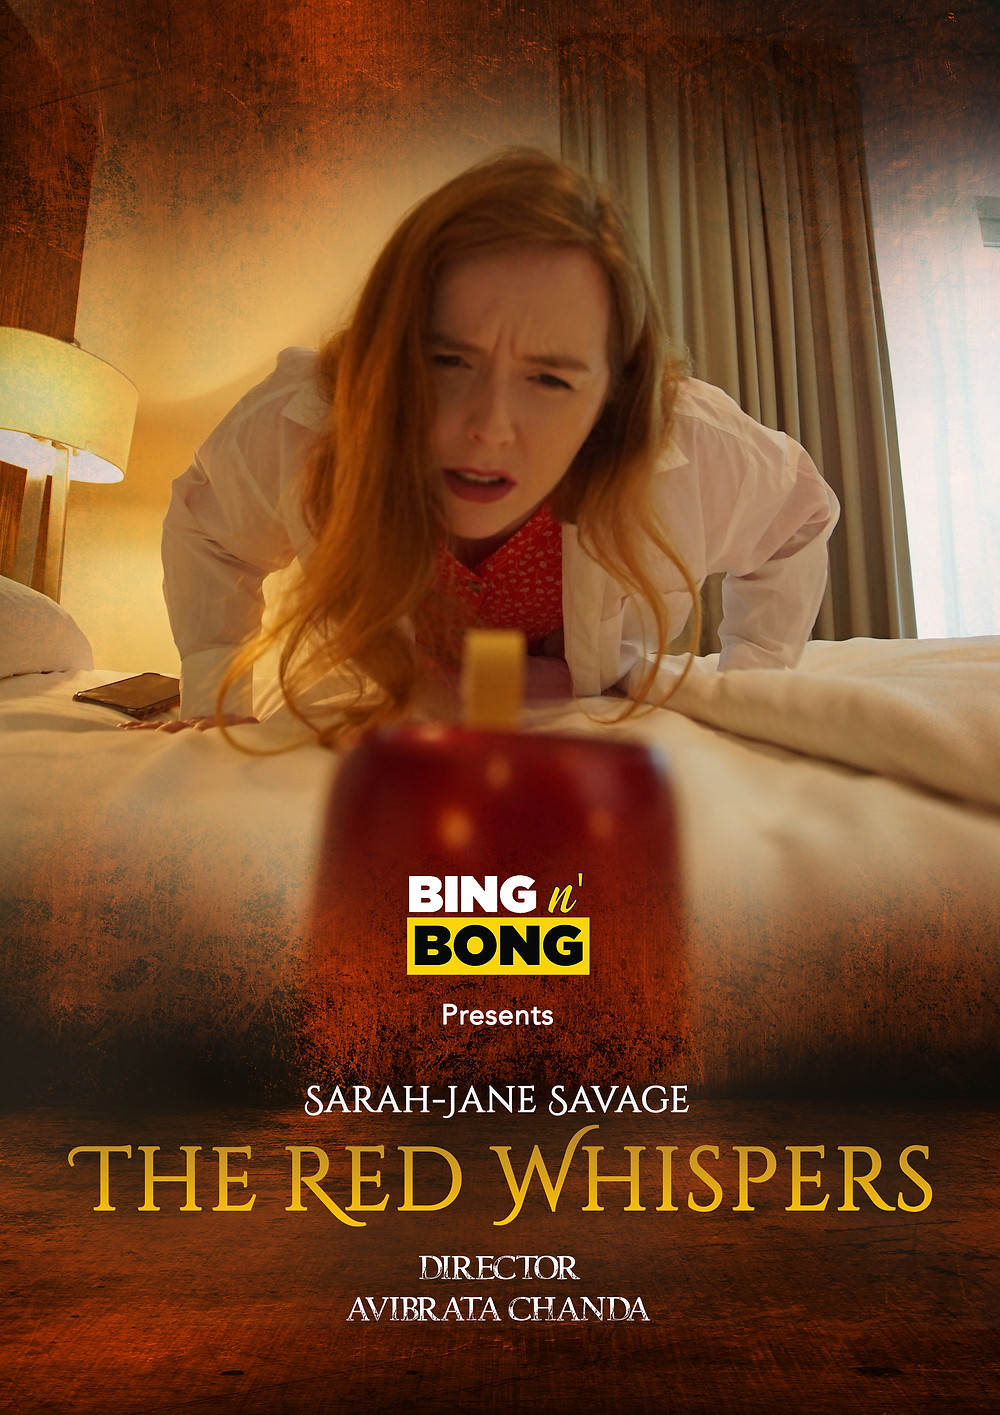 A woman peers over a bed at a mysterious red box; the title of the film and director, producer and star credits